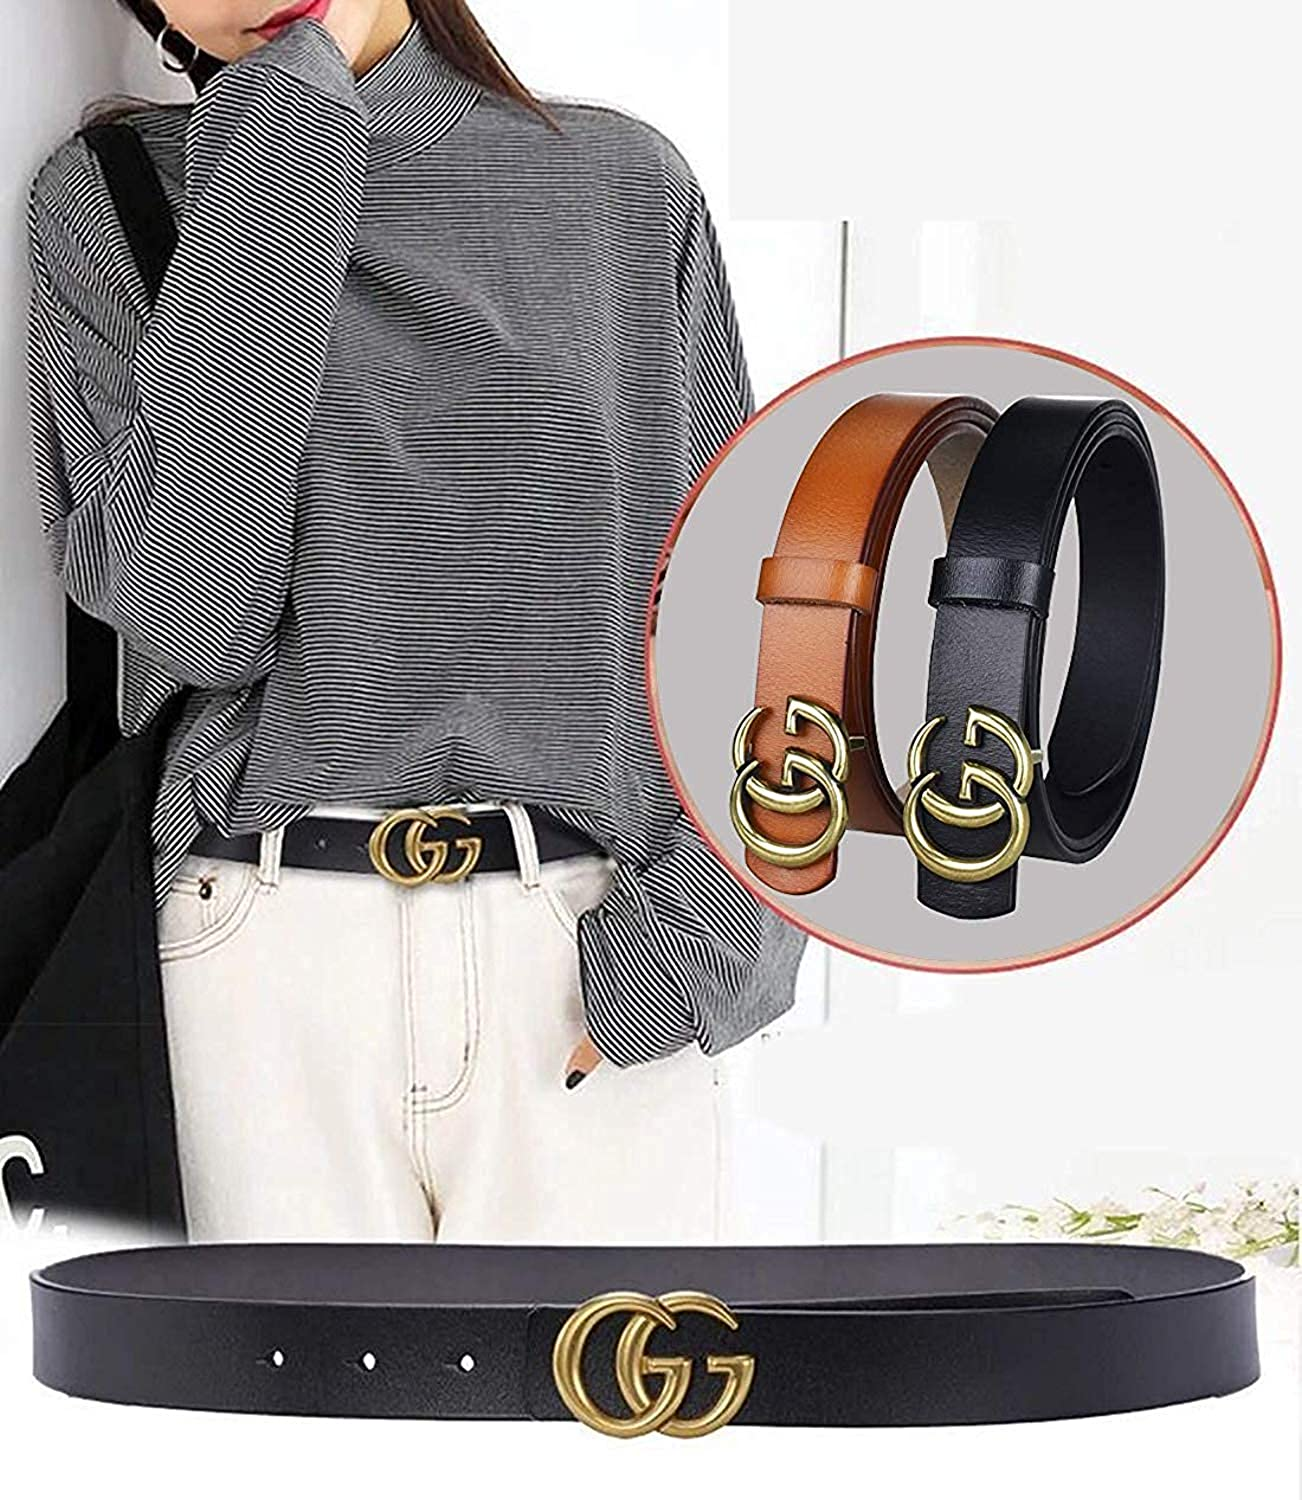 43d5e2e7553 Fashion G-Style Gold Buckle Unisex Cowhide Leather Belt Vintage Thin Dress  Belts For Jeans larger image